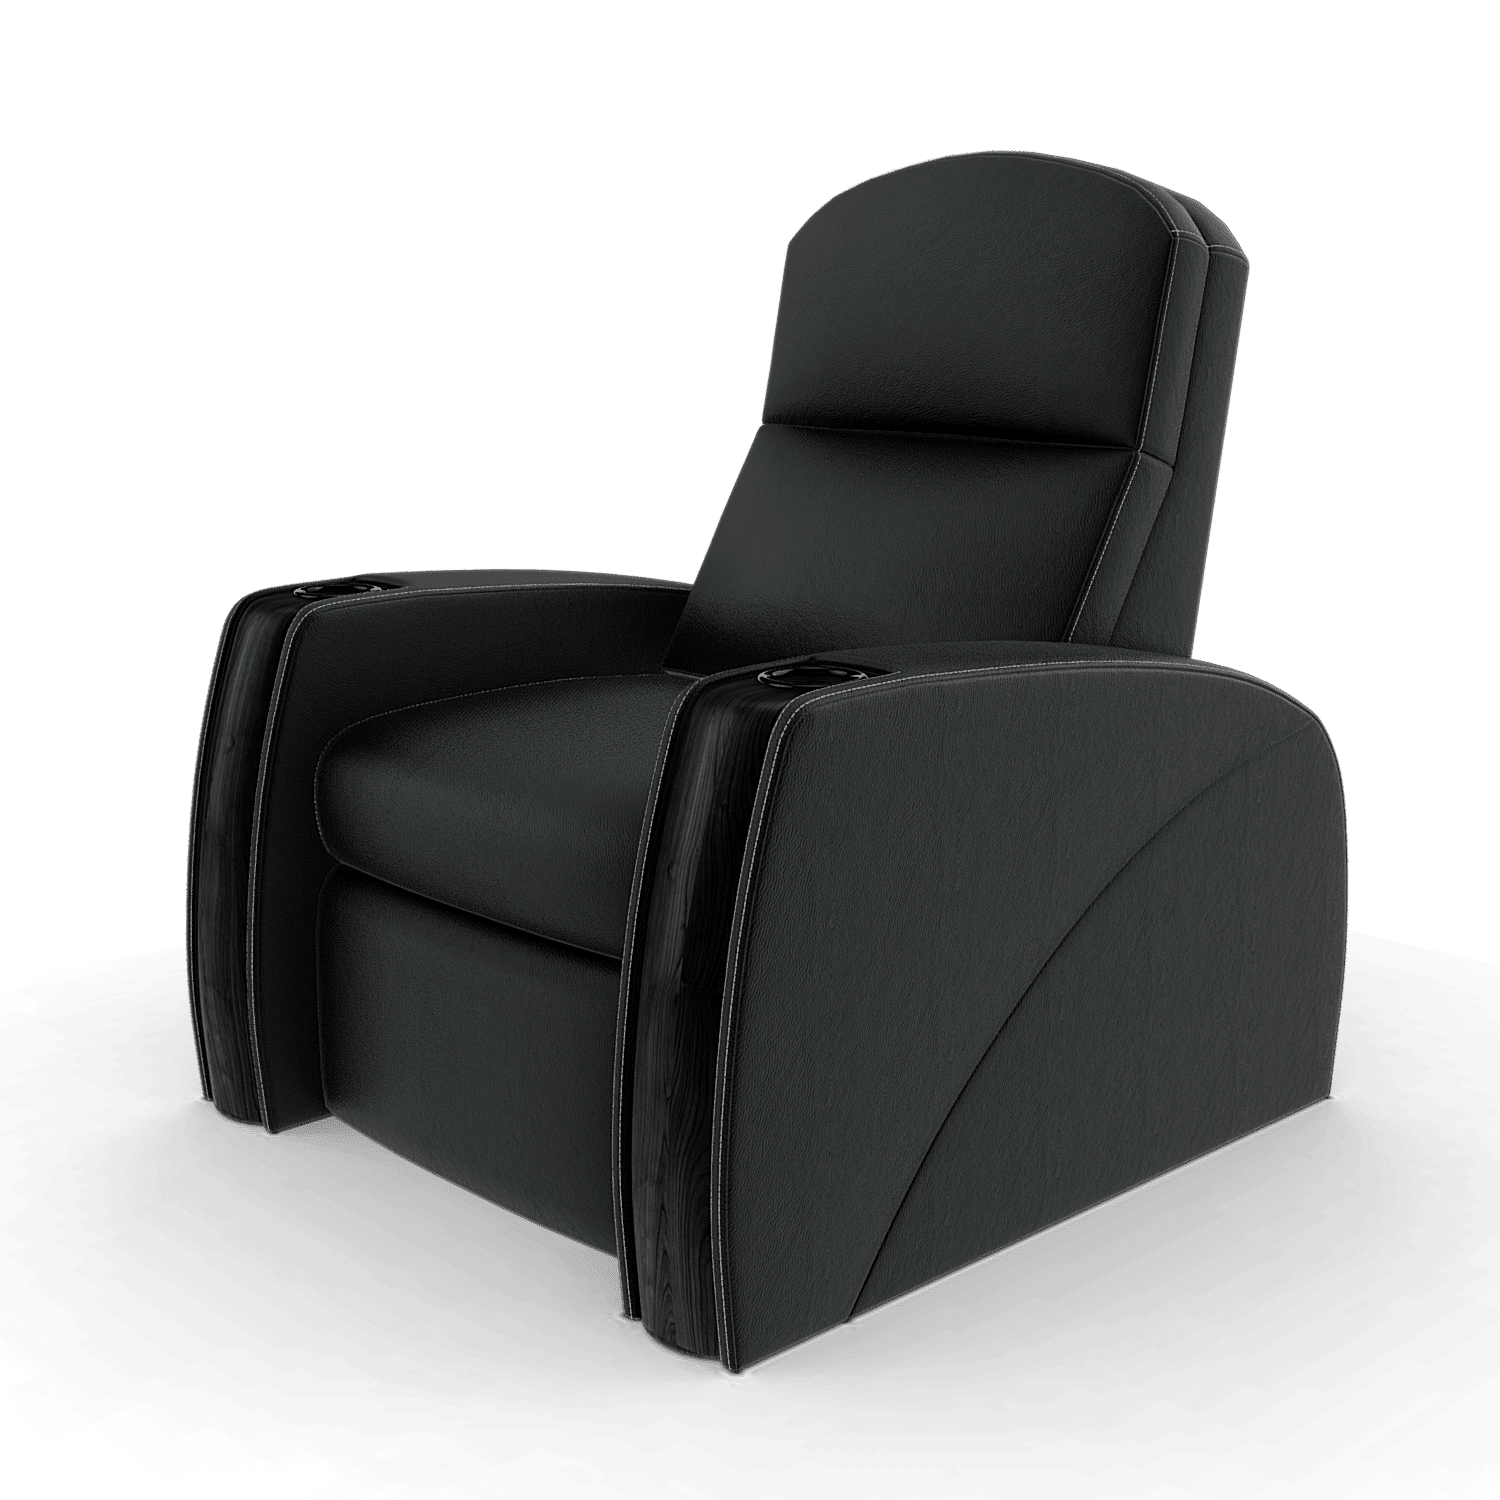 home_theater_seating black